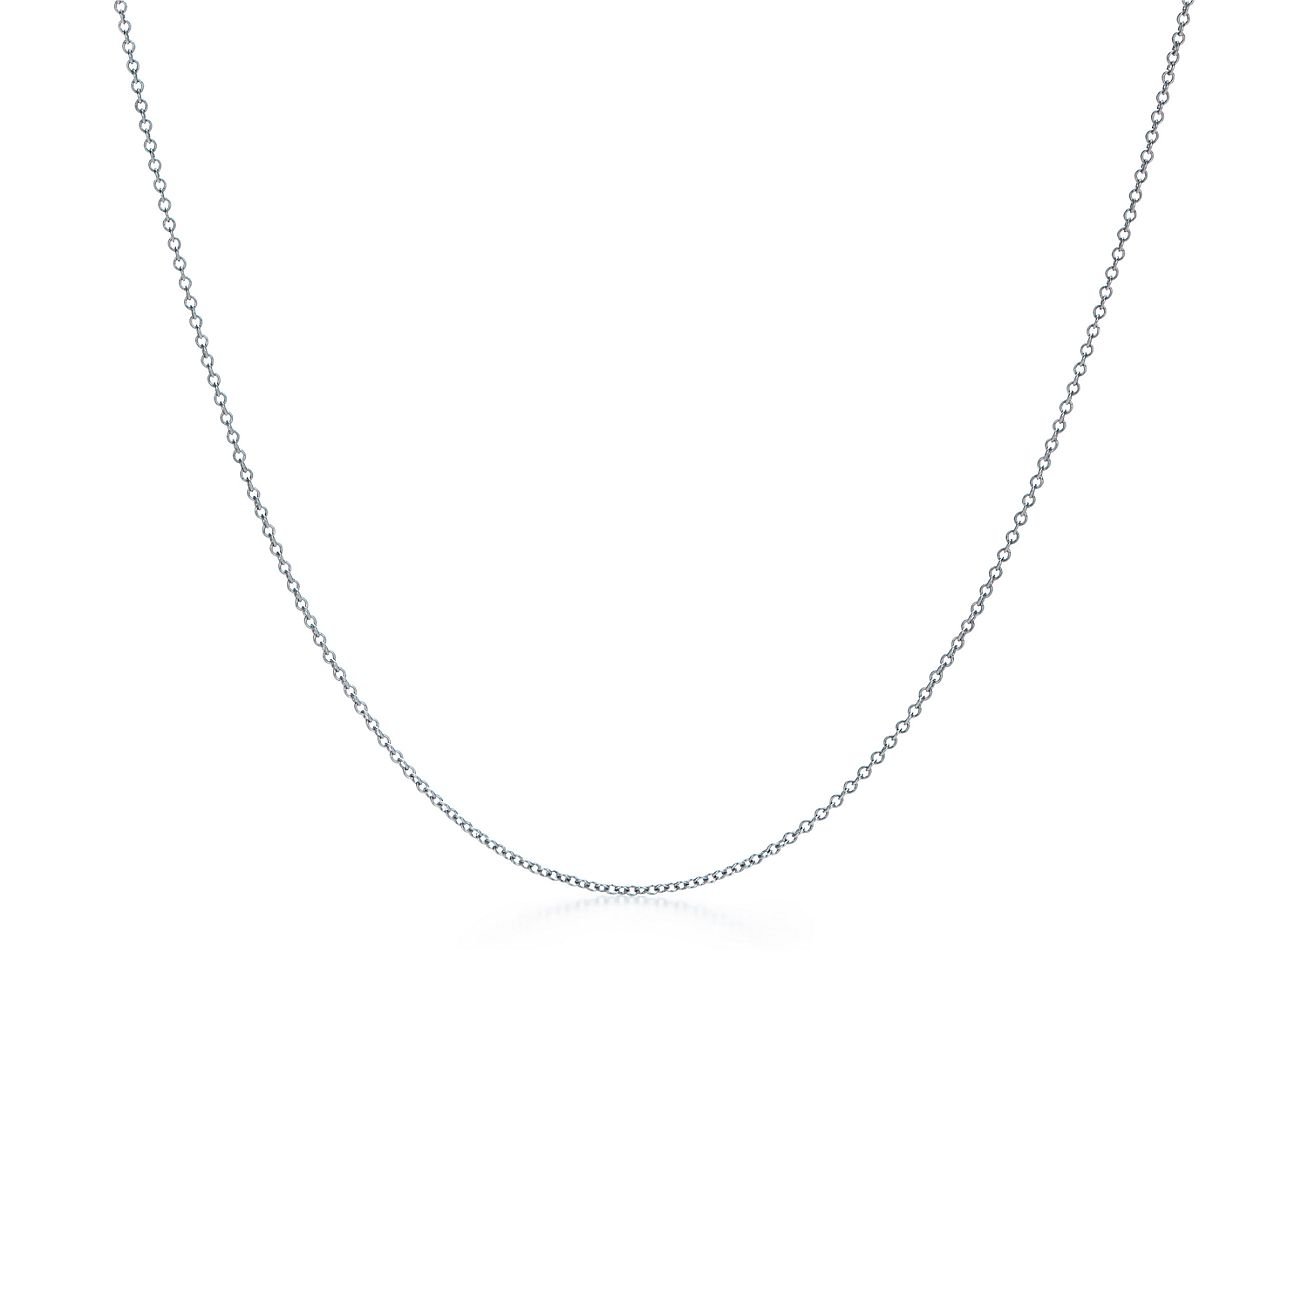 Necklace gold chain